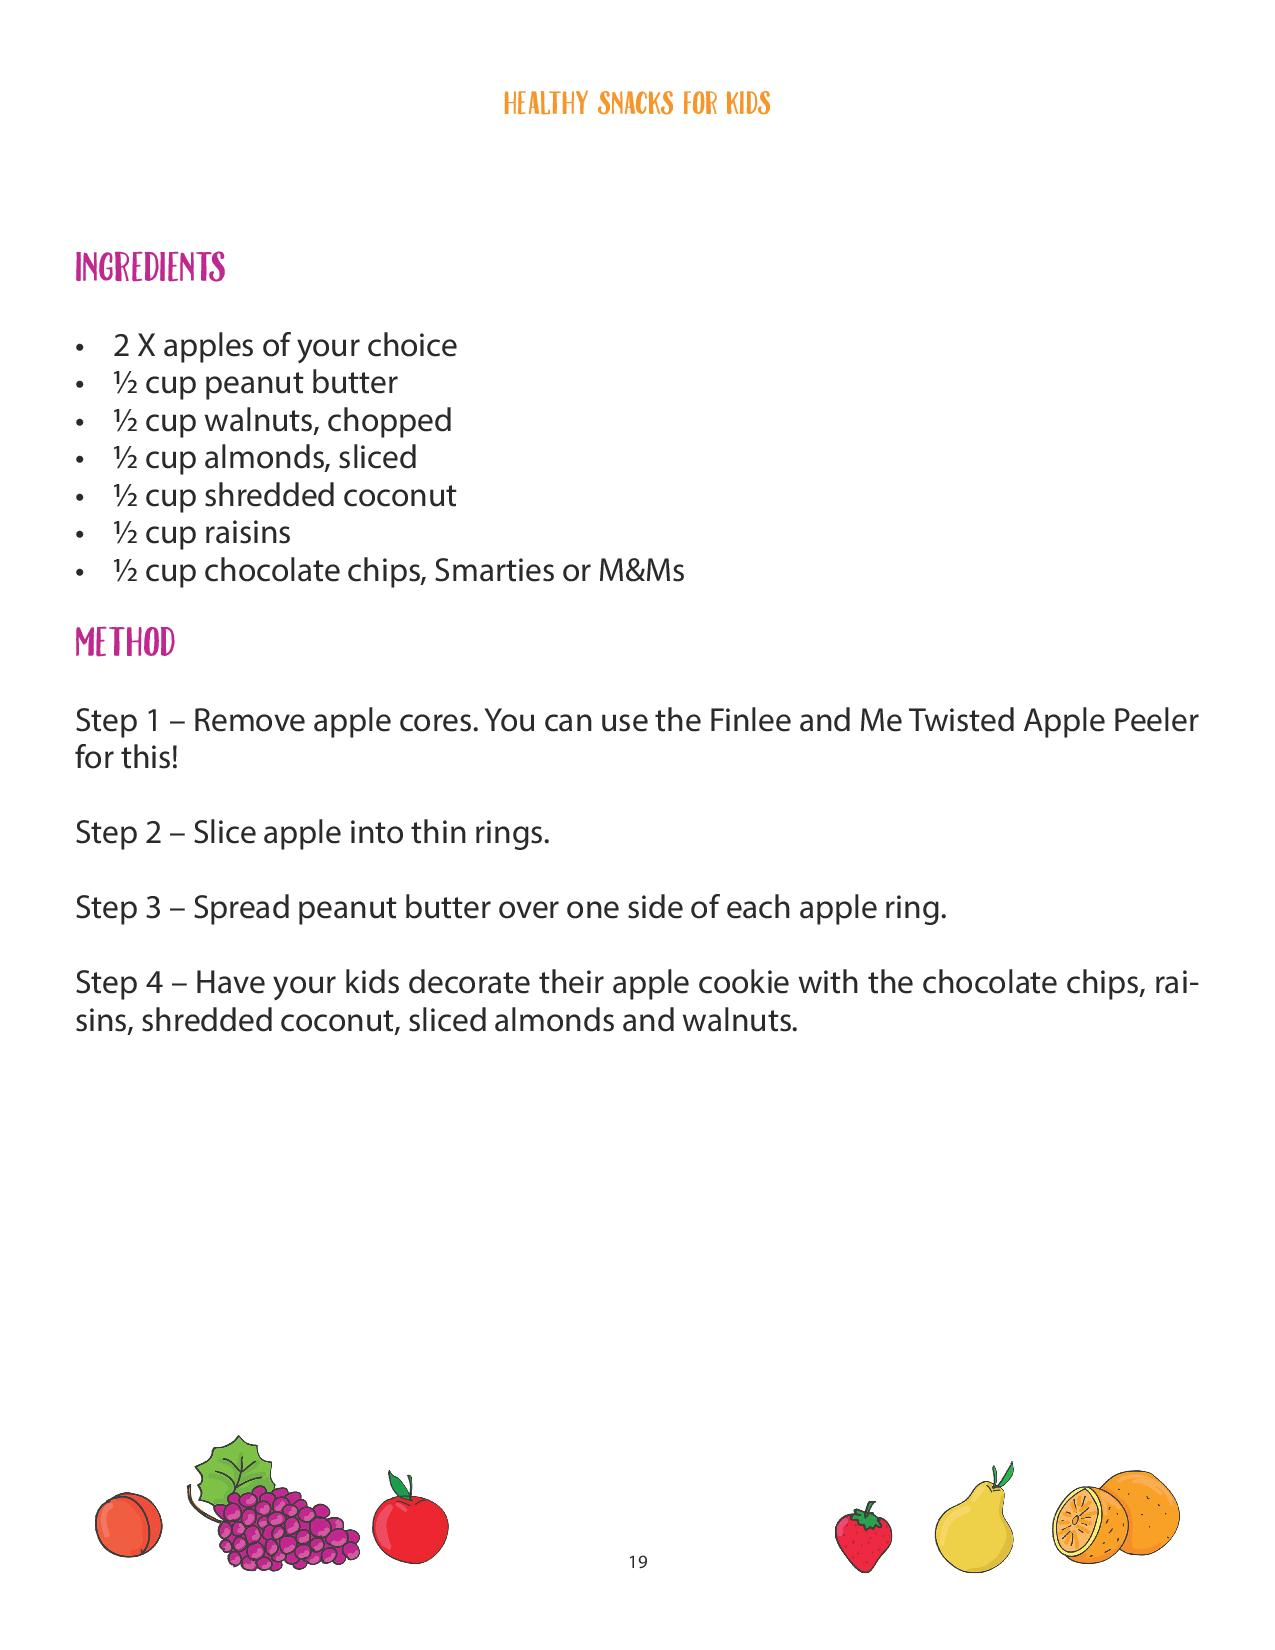 healthy snacks for kids ebook Mar 7-page-019